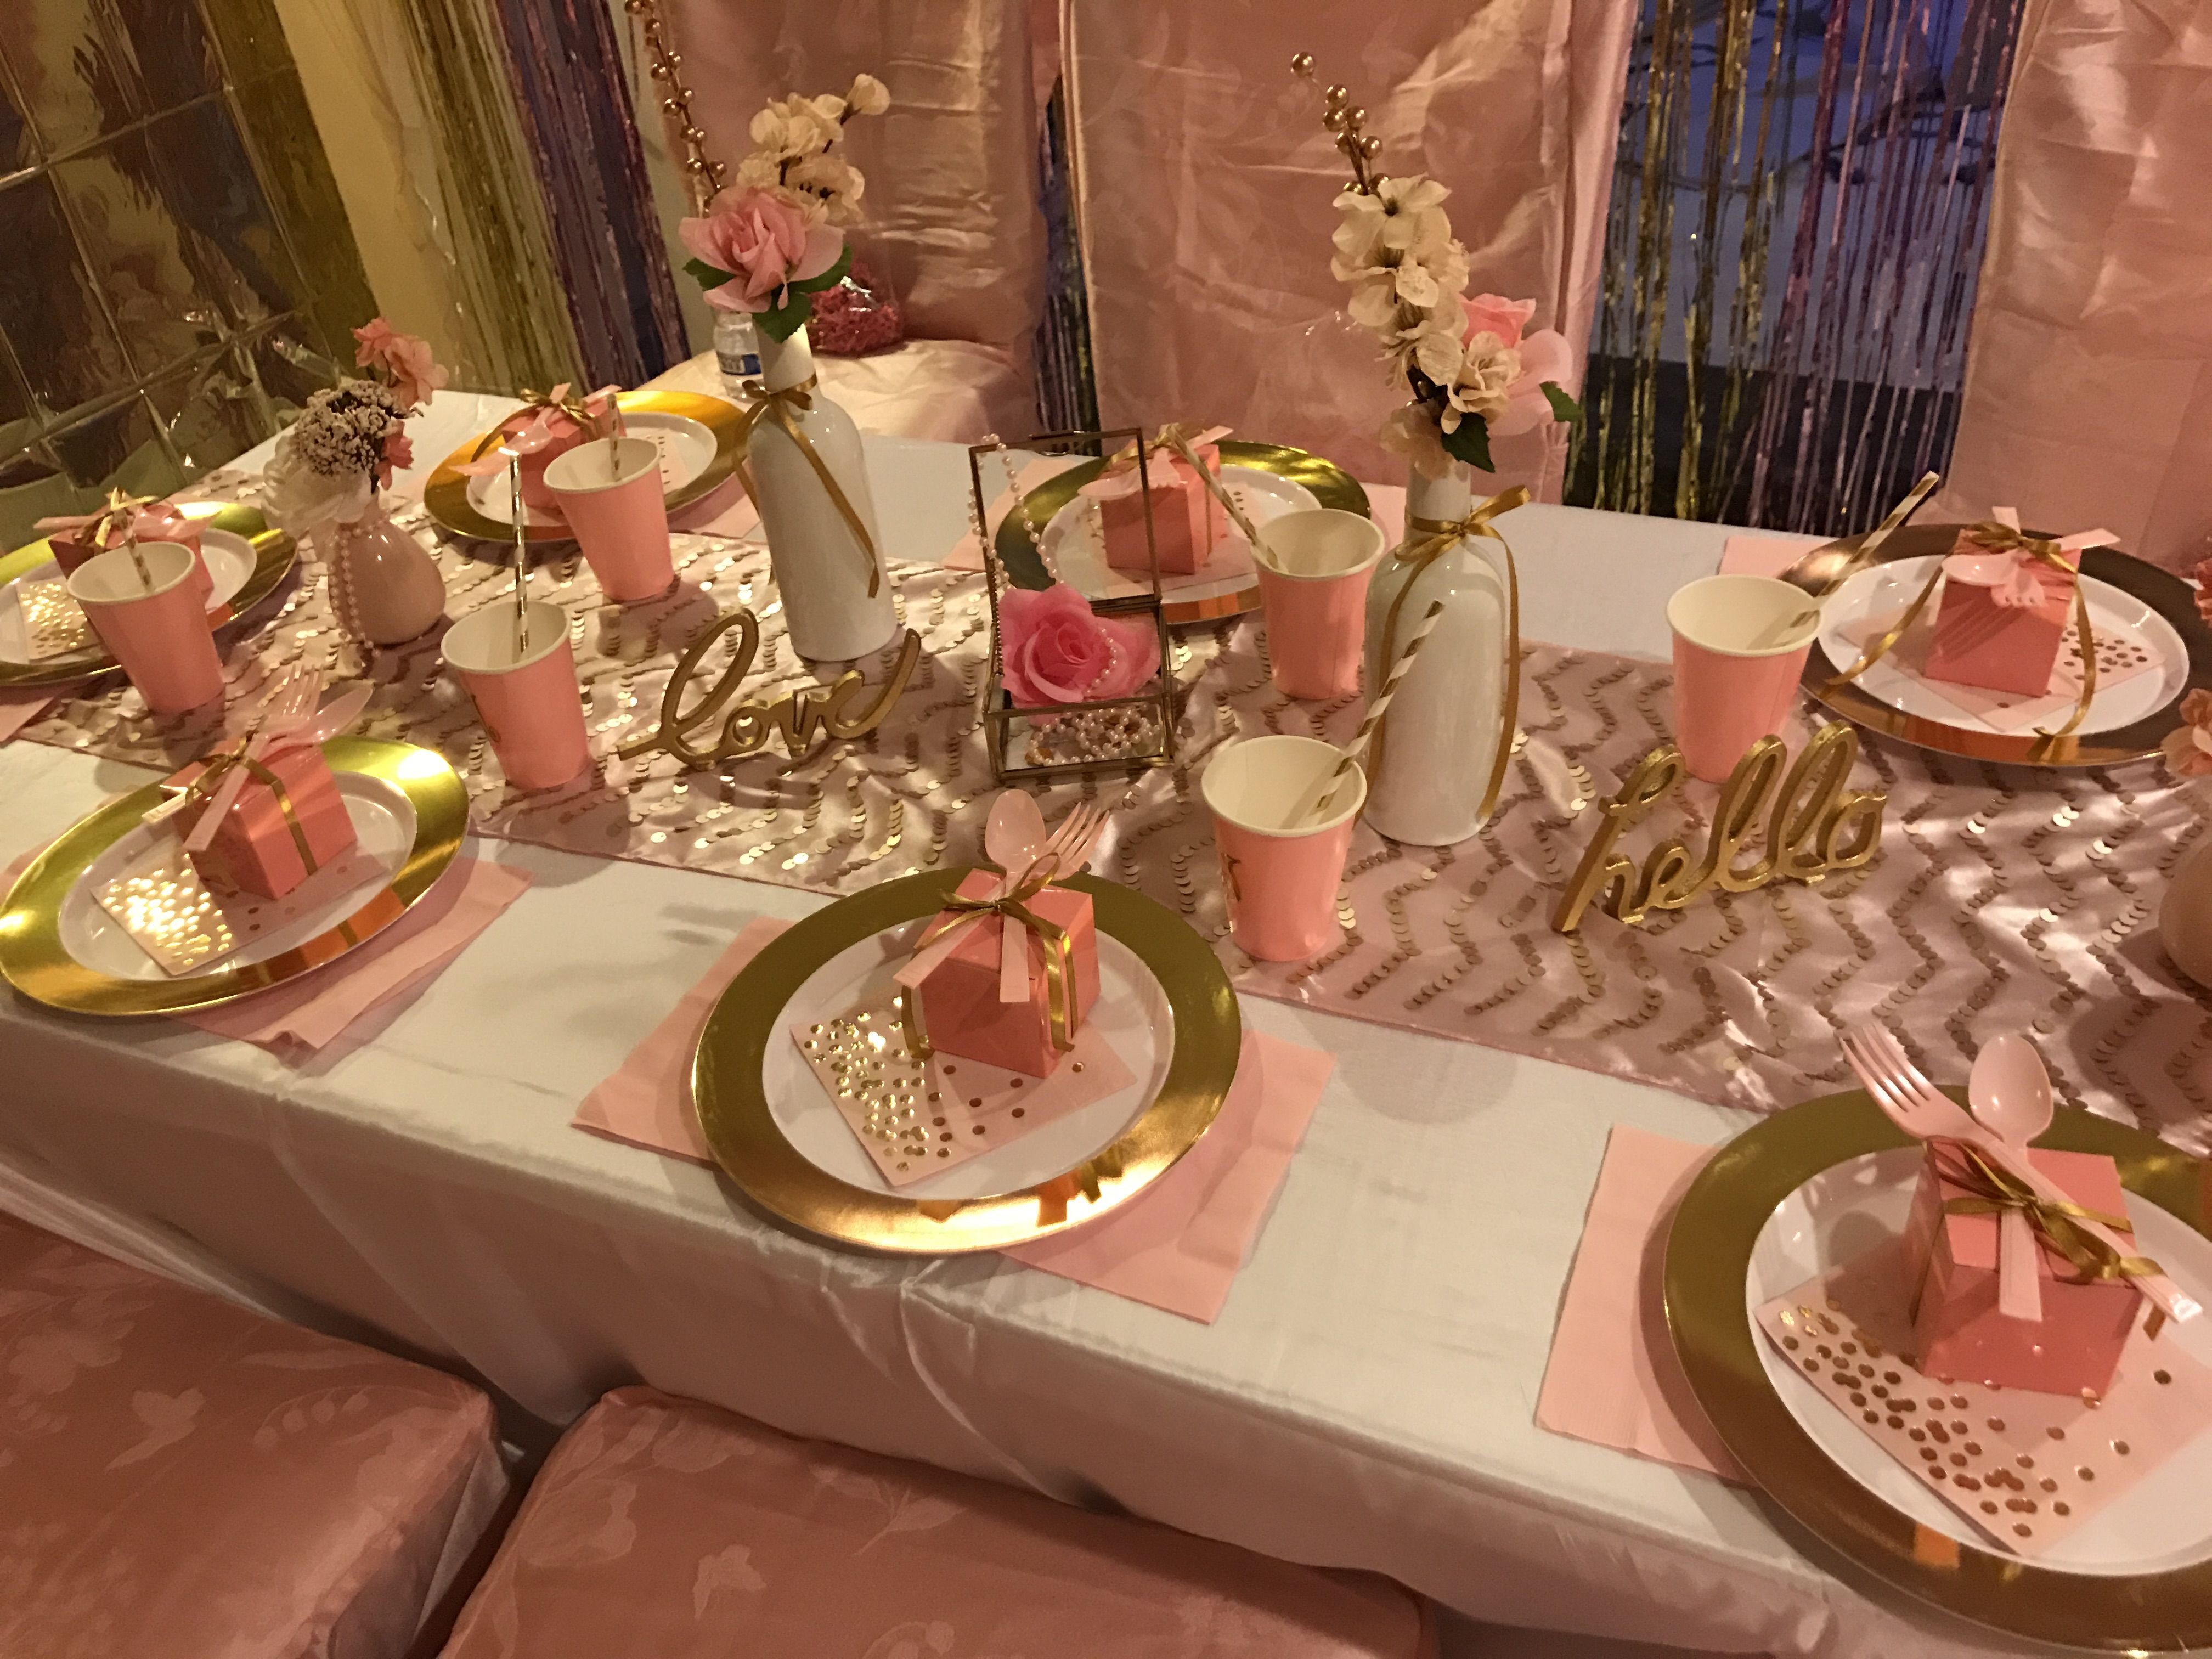 My 7 Year Old Pink And Gold Spa Sleepover Party Table Decor For A Glamorous Feast Birthday Party Table Decorations Spa Sleepover Party Girl Spa Party